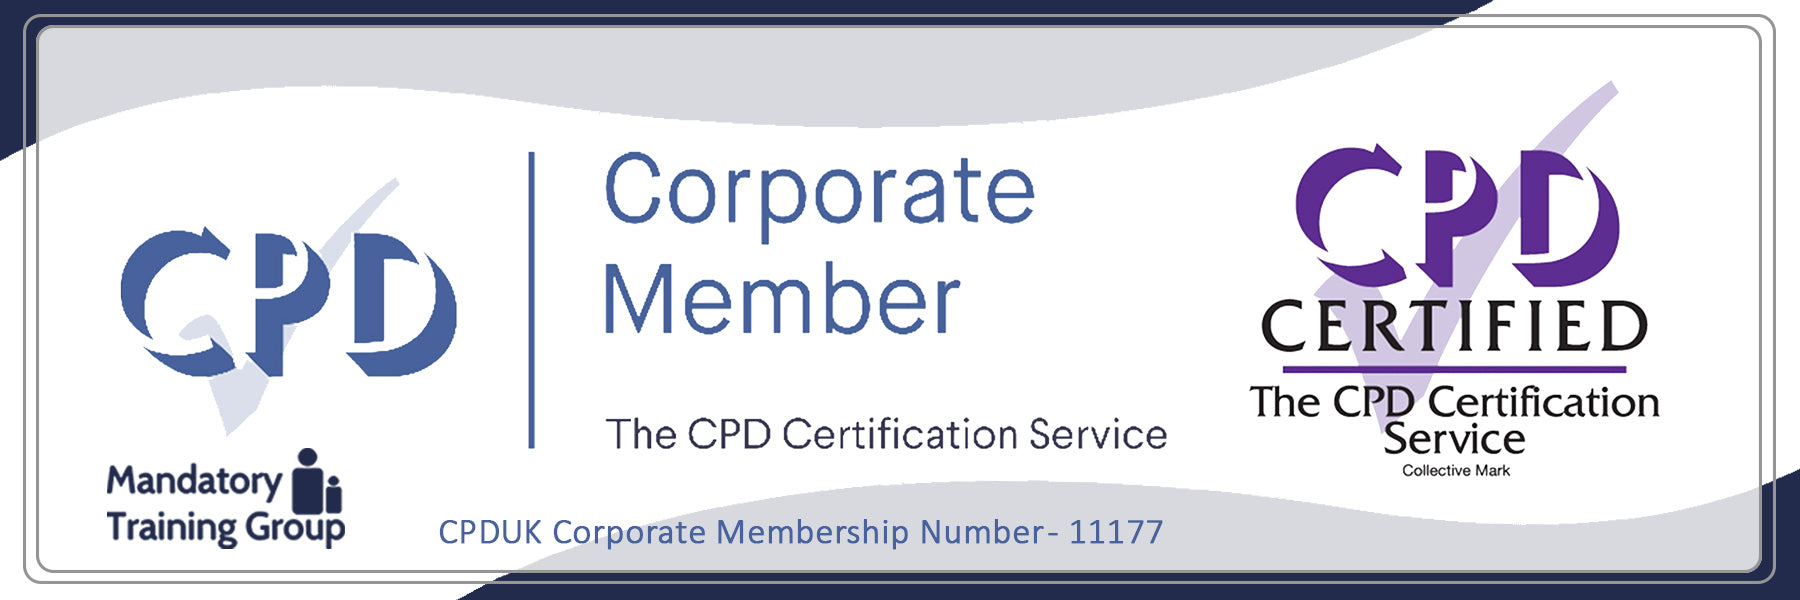 Adult Basic Life Support - Online CPD Course - The Mandatory Training Group UK -